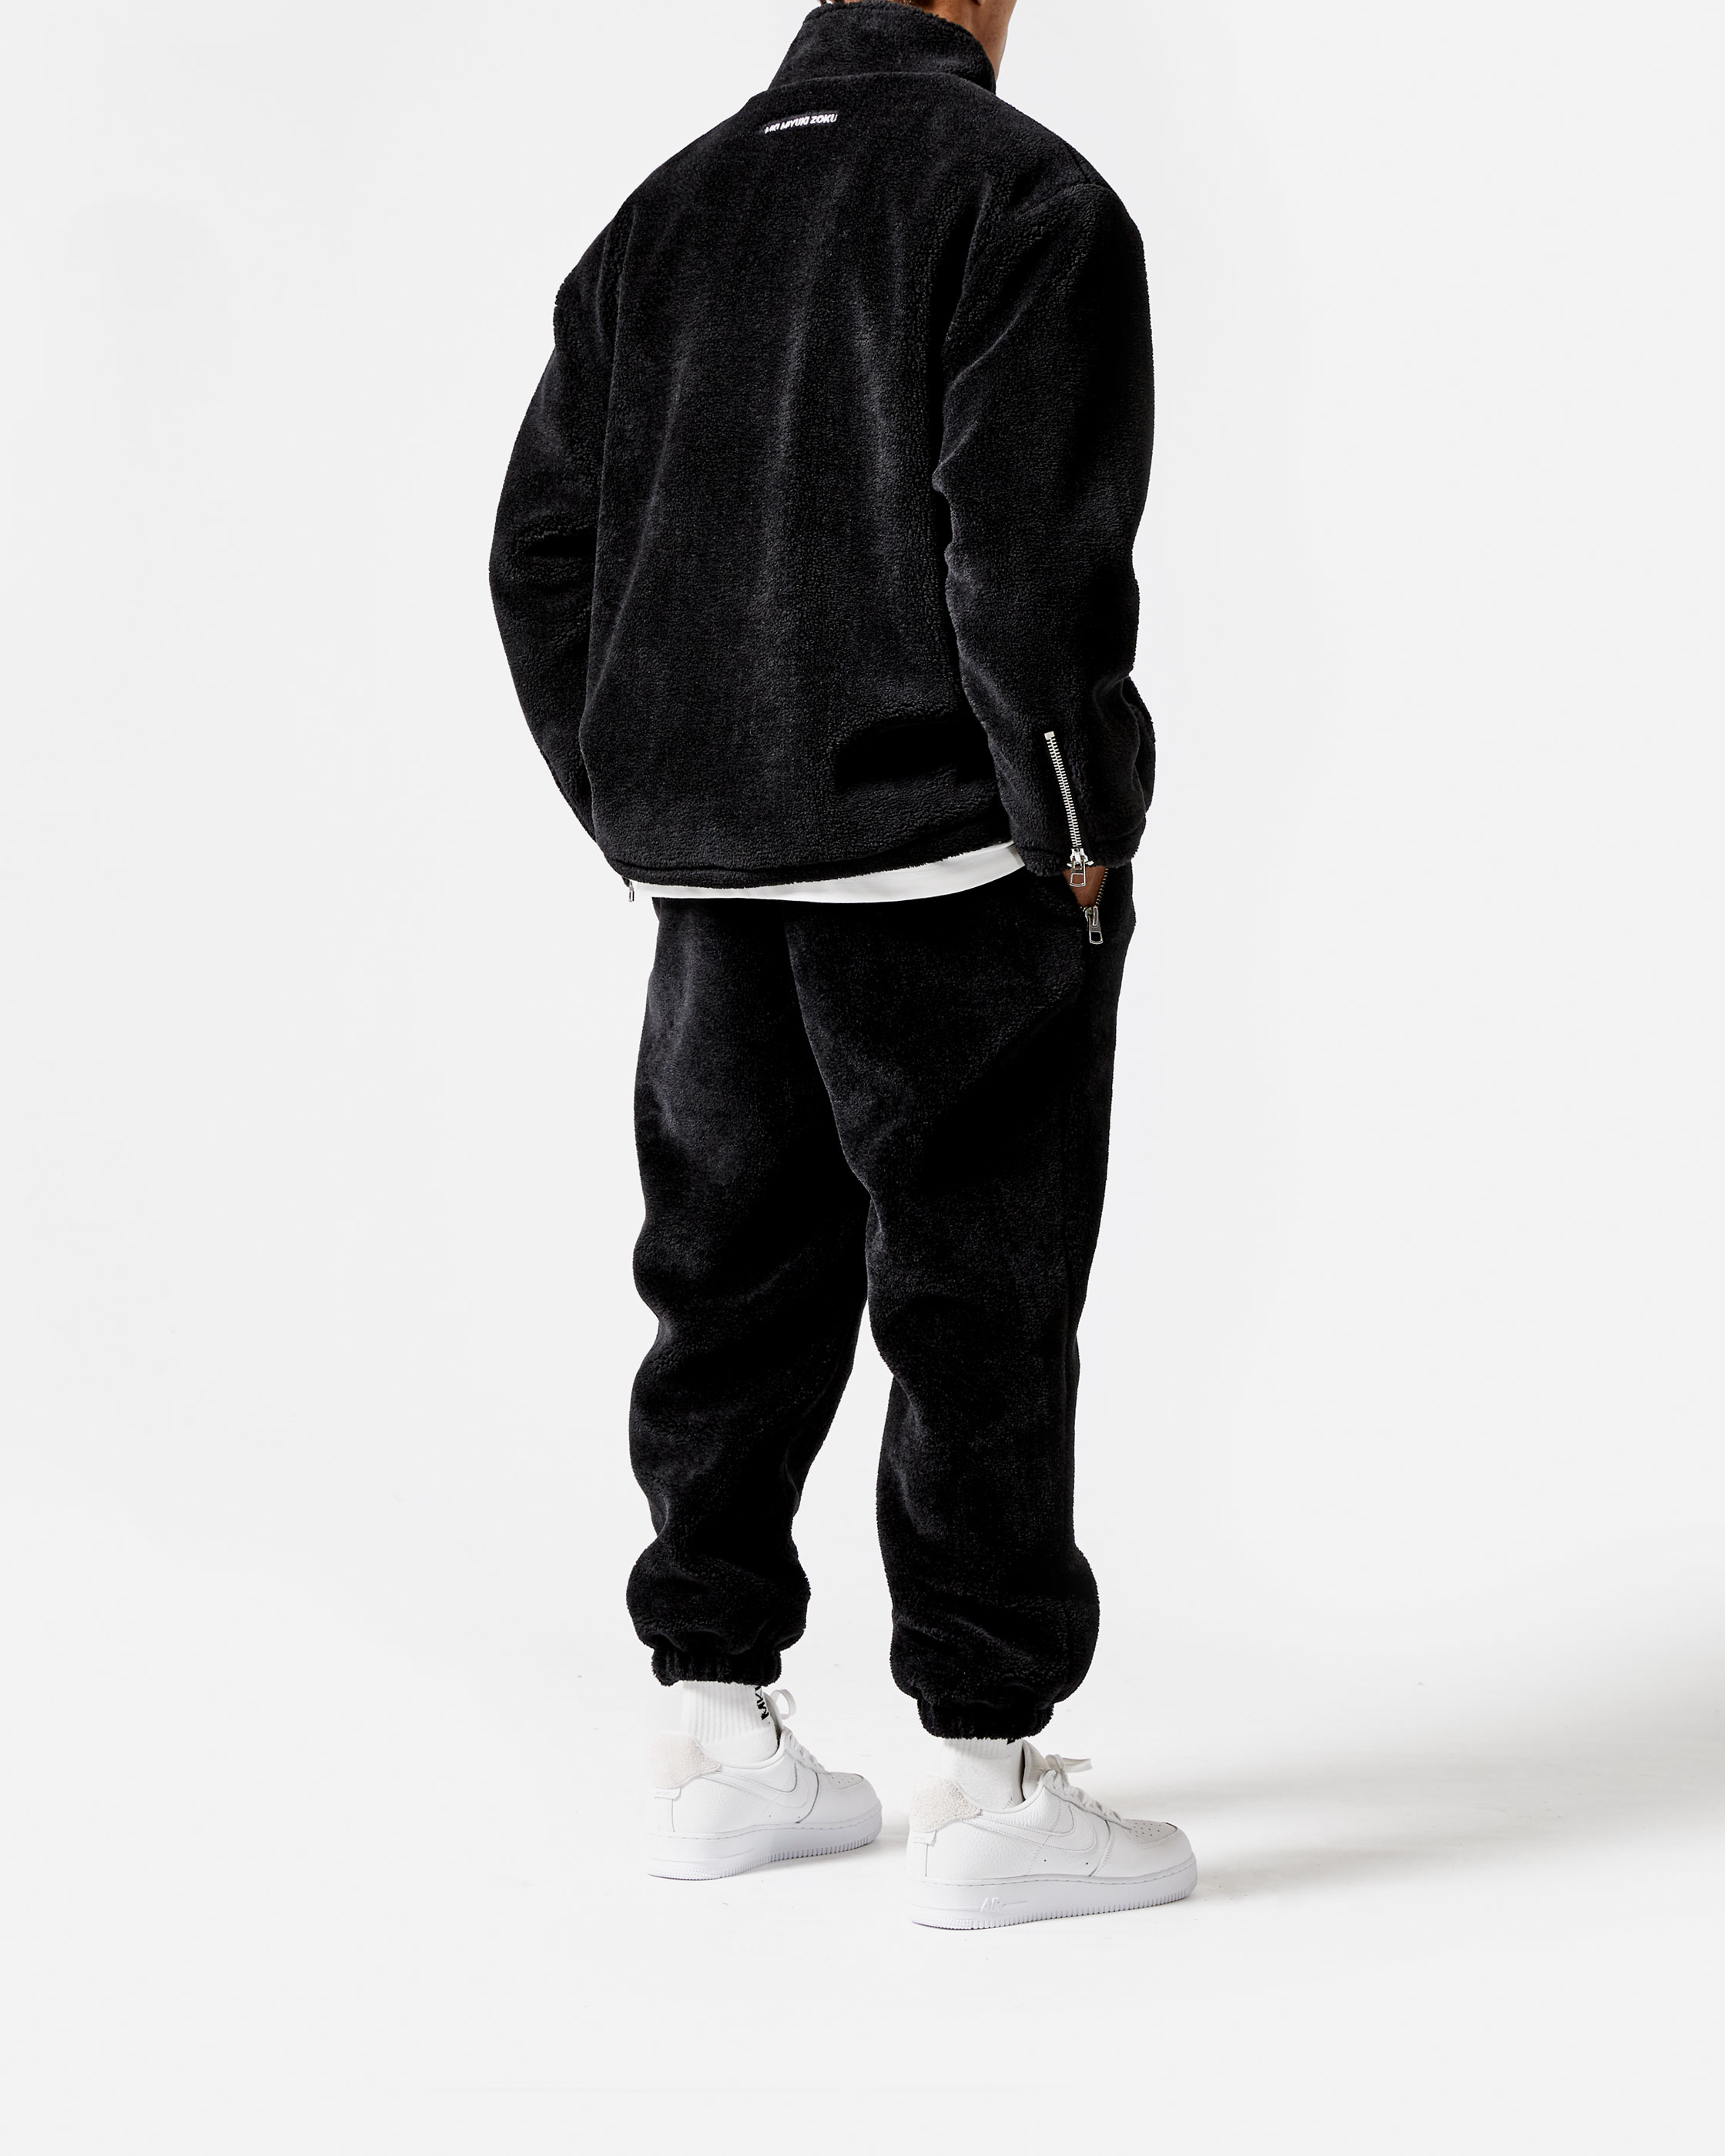 MKI AW20 SHERPA COLLECTION 1